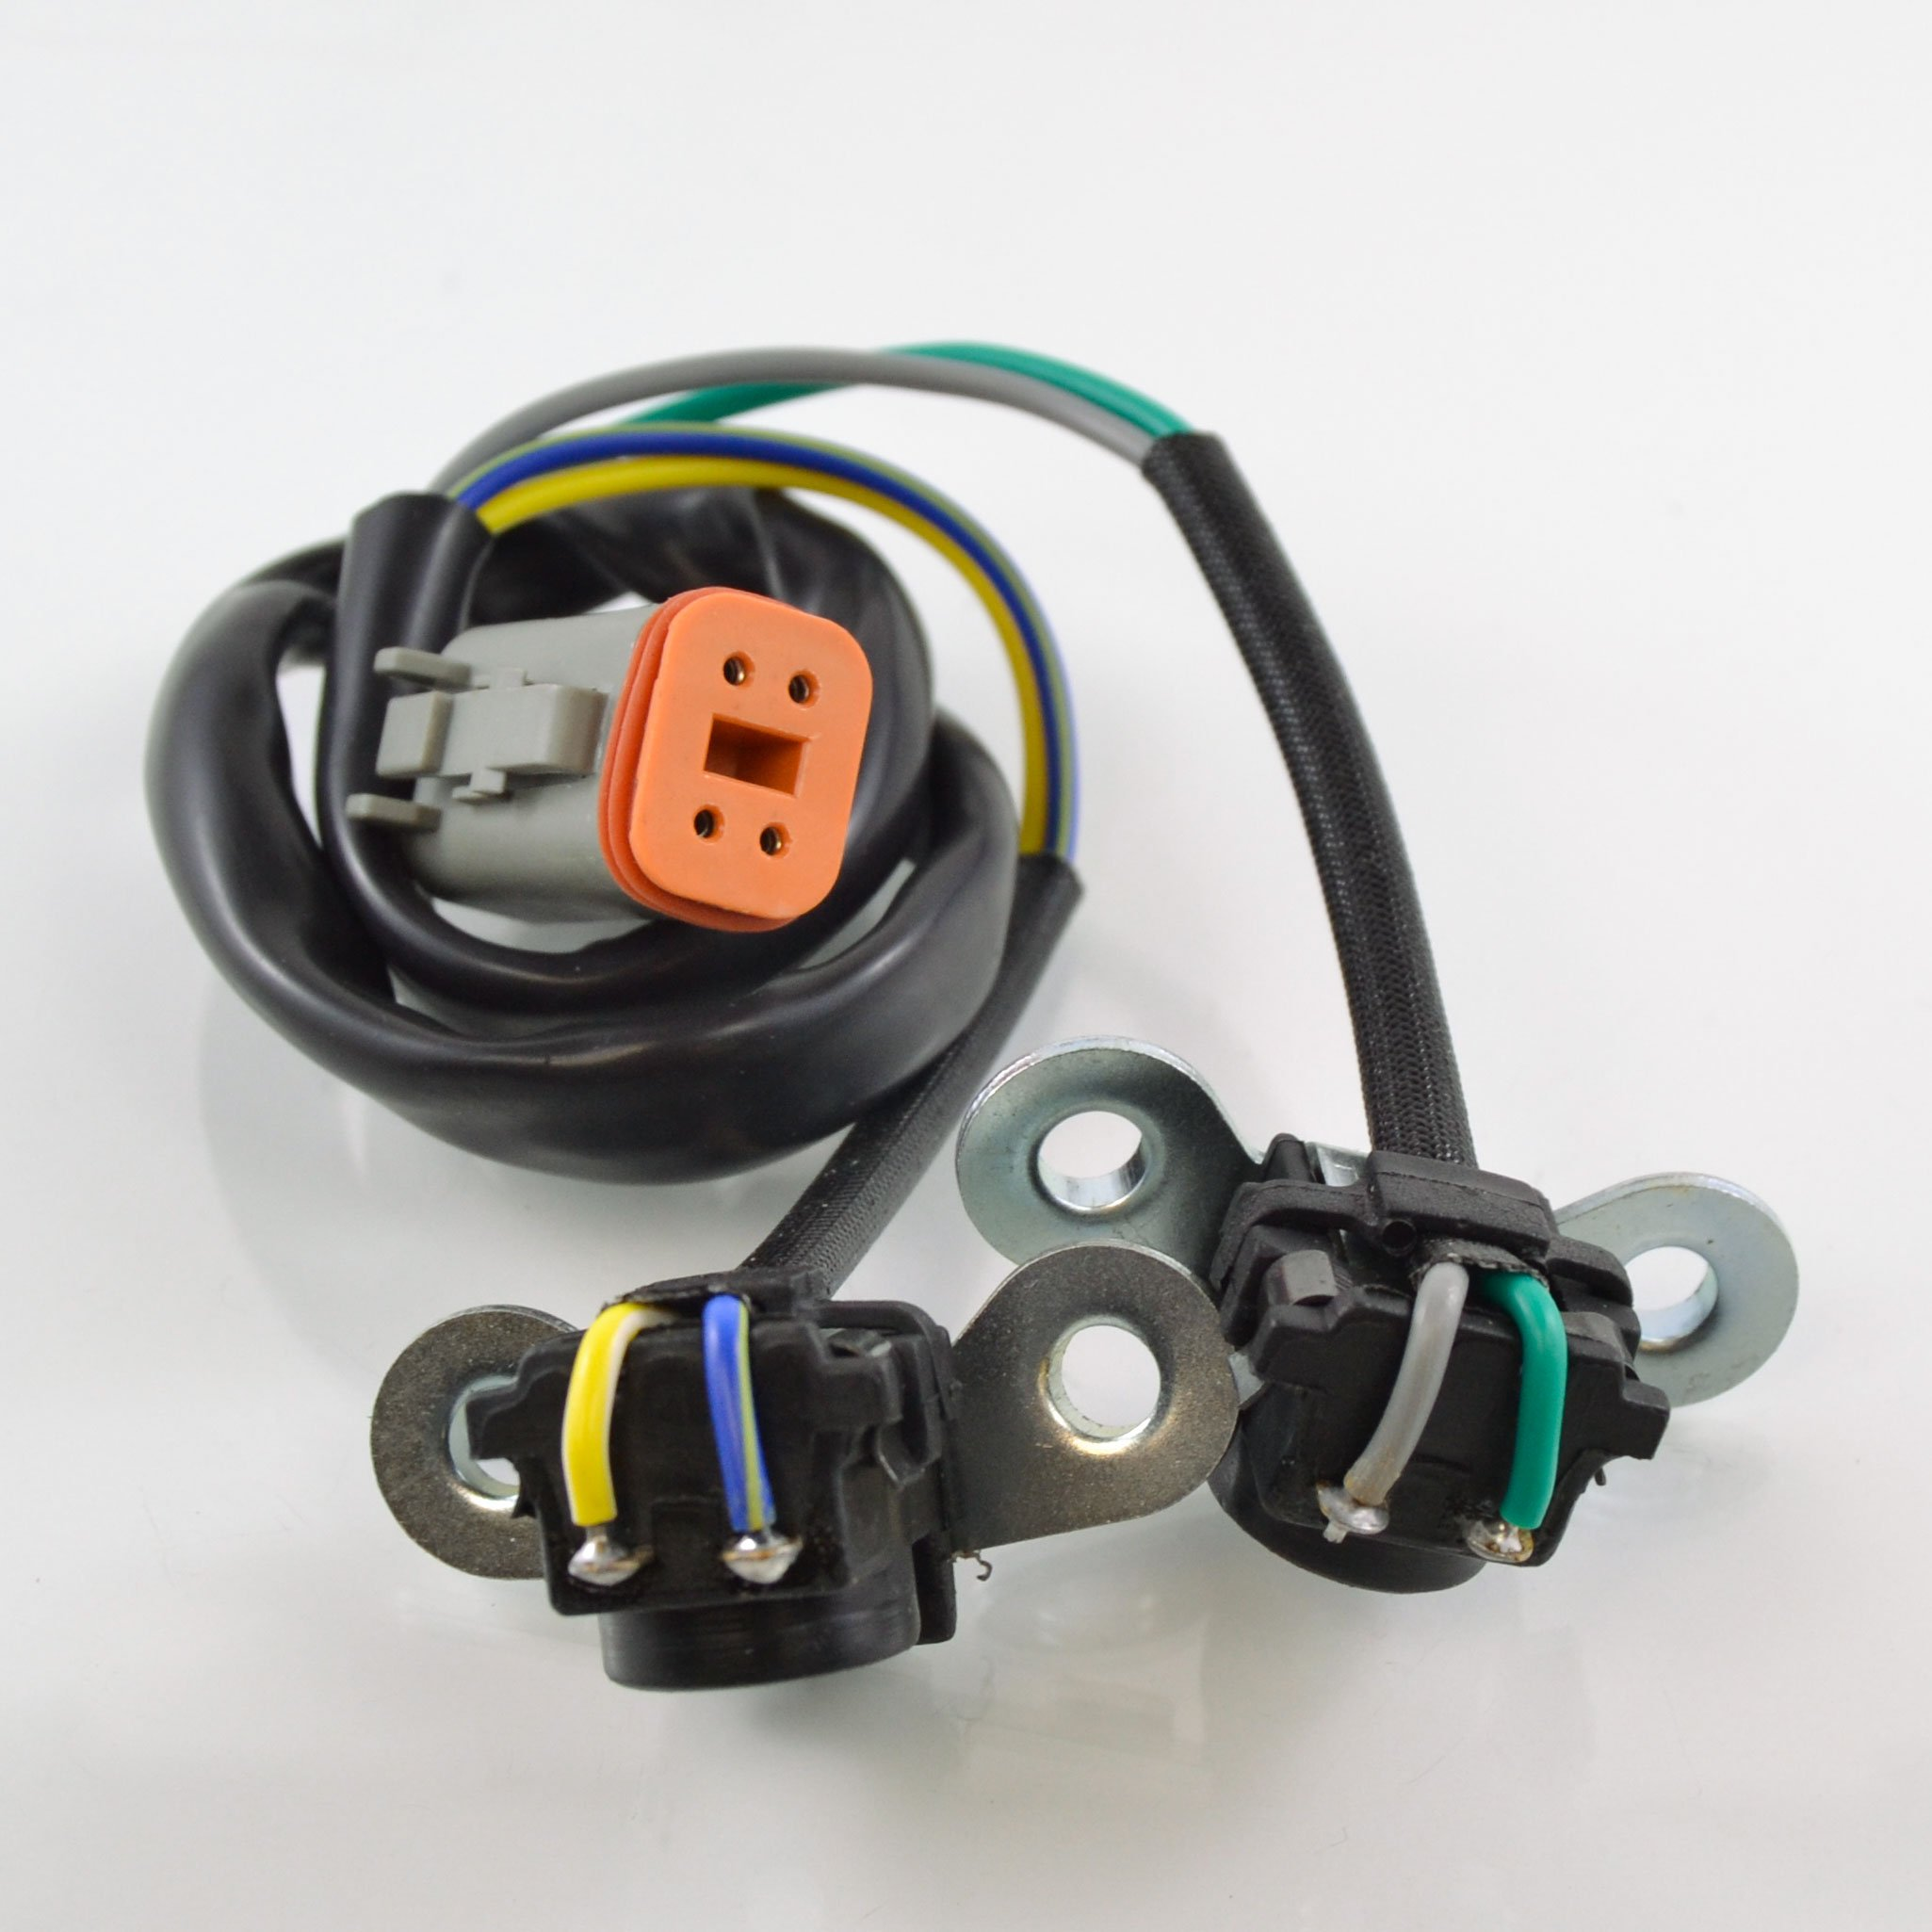 Pick Up Pulsar Coil For Ski Doo Adrenaline/Grand Touring Sport 500 600 700 / Mach 1 700 / Mach Z 800 / MX Z 500 600 700 Sport/Renegade / Summit 600 700 800 / Summit 800 HO / 1999-2015 by Mister Electrical (Image #1)